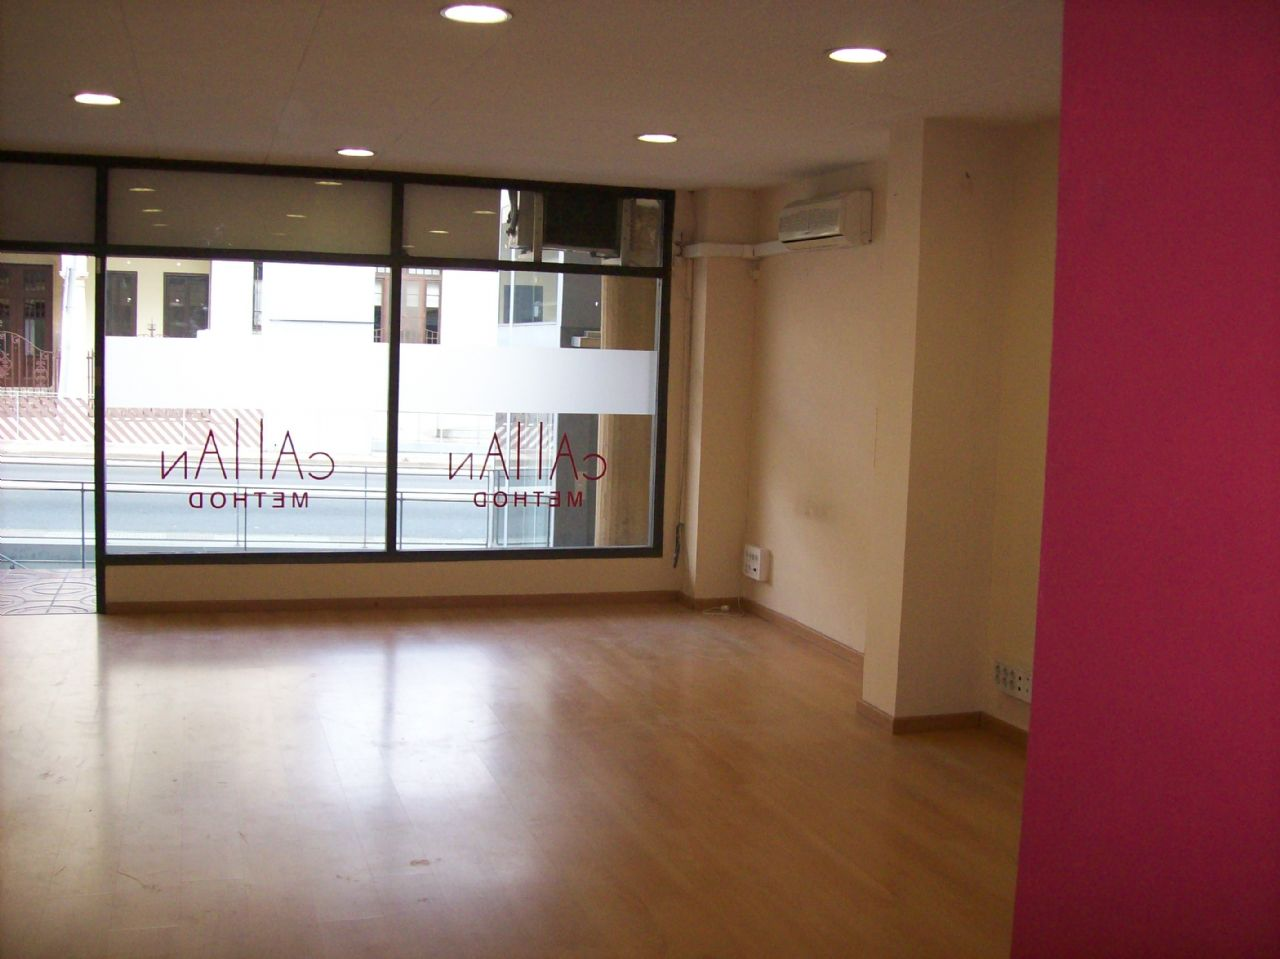 Local comercial en Calella, venta